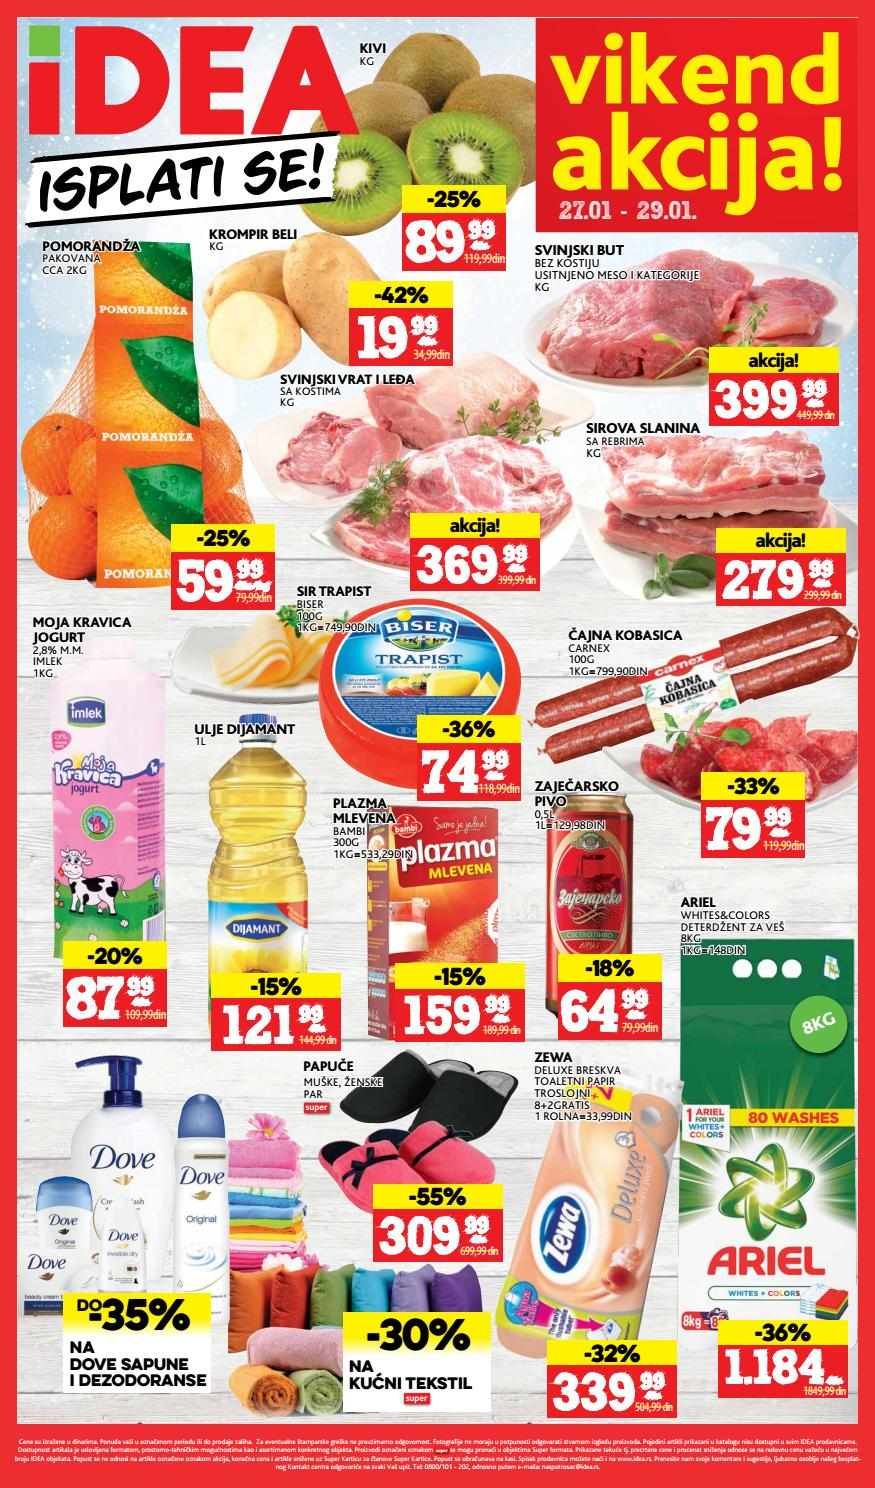 Nova vikend akcija od 27.- 29.01.2017. u Idea supermarketima.